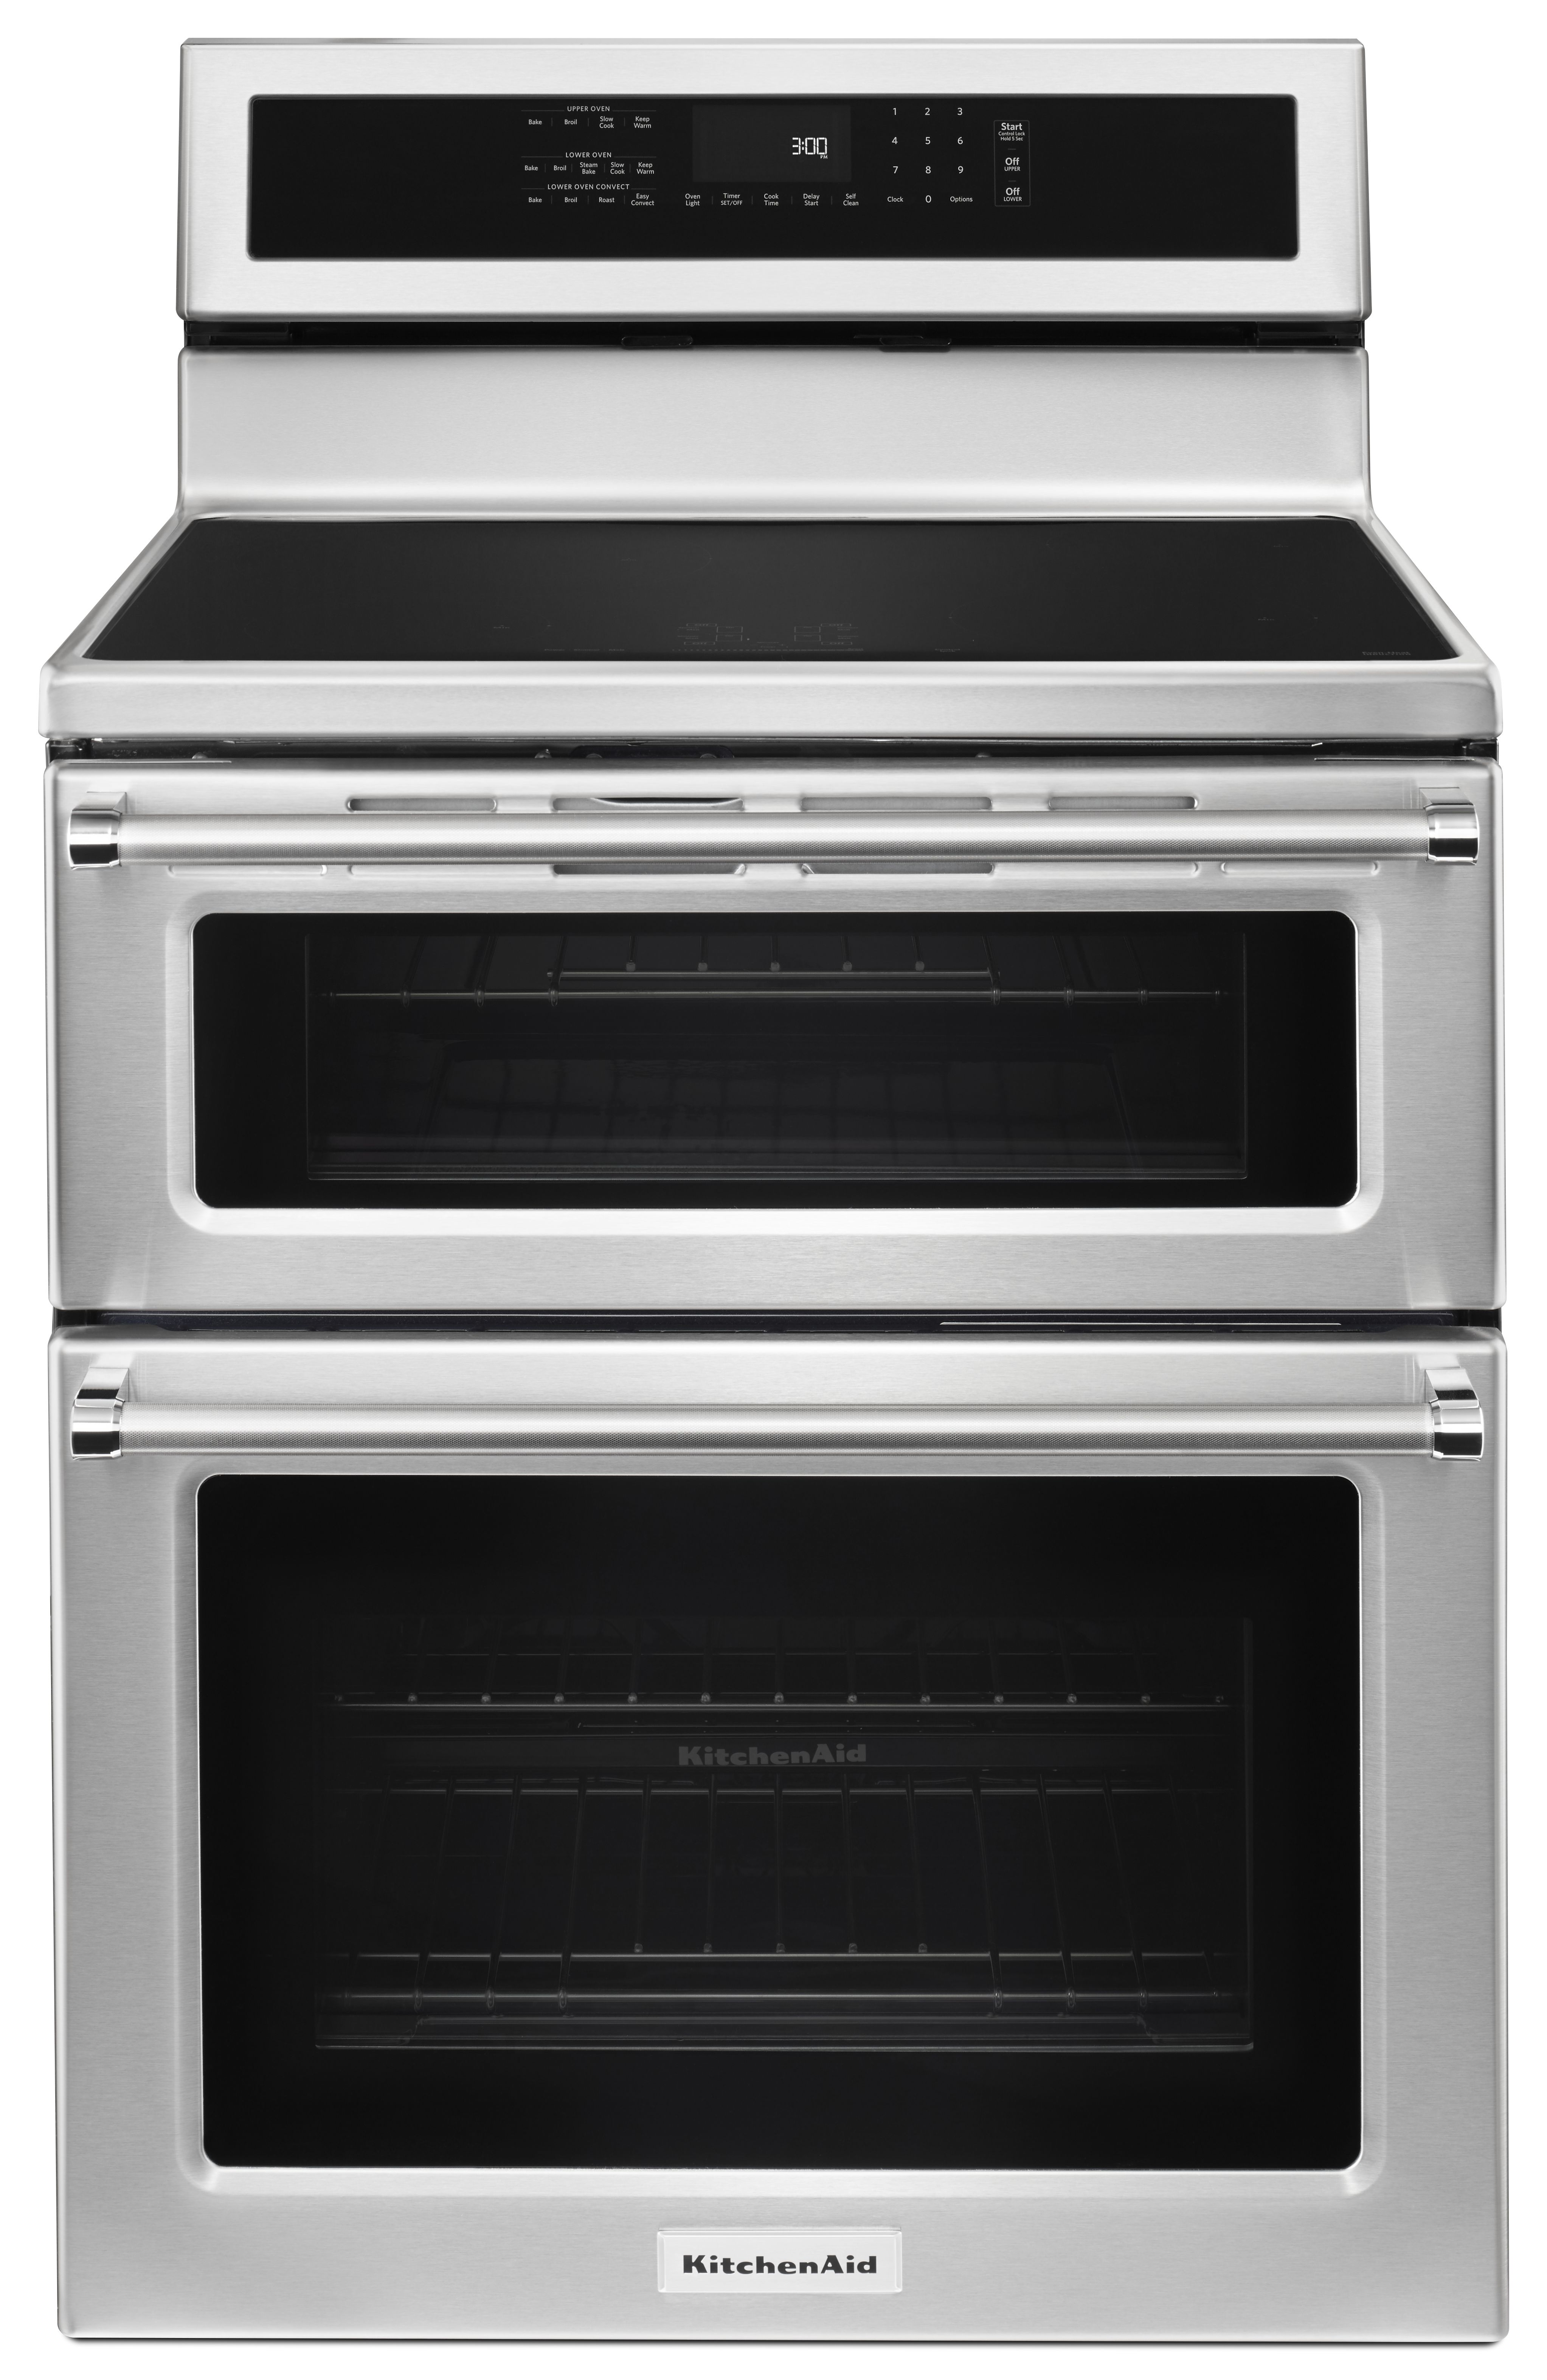 kitchenaid 30 free standing electric double oven range stainless steel kfid500ess - Kitchen Aid Oven